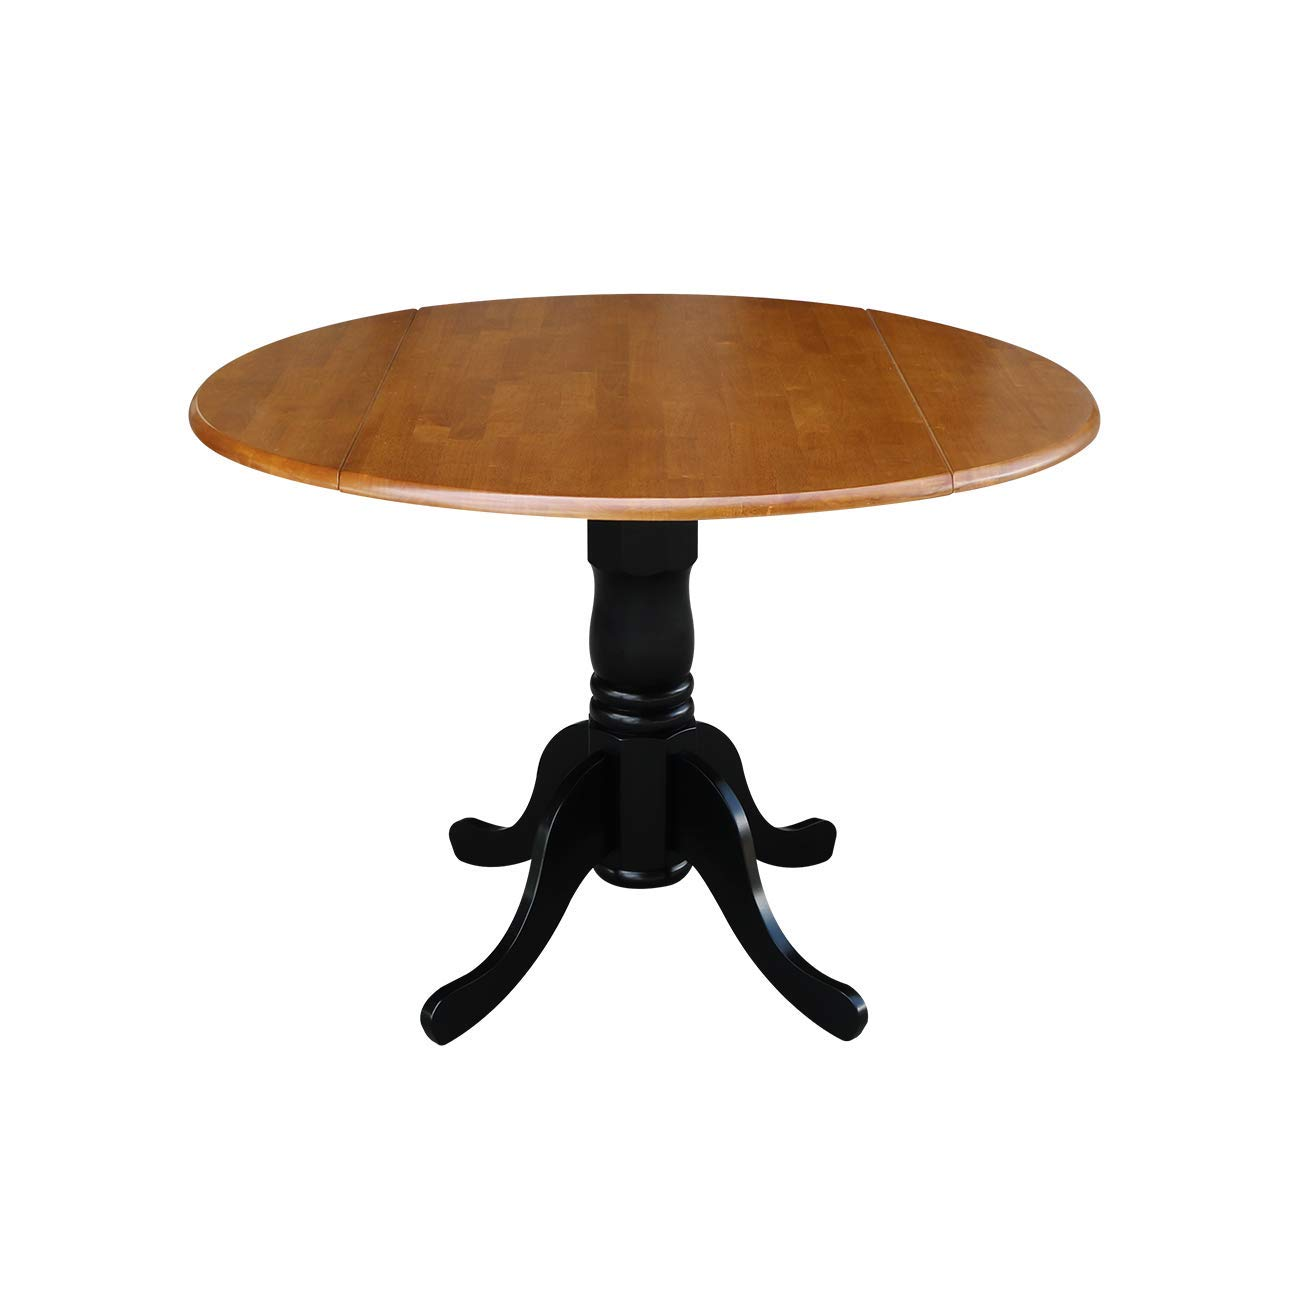 Elegant Round Kitchen Table With Drop Leaves, Sturdy and Long Lasting Solid Engineered Wood Construction for a Stable Dining Surface, Cleans Easily with a Damp Cloth, Durable, Black/Cherry Finish